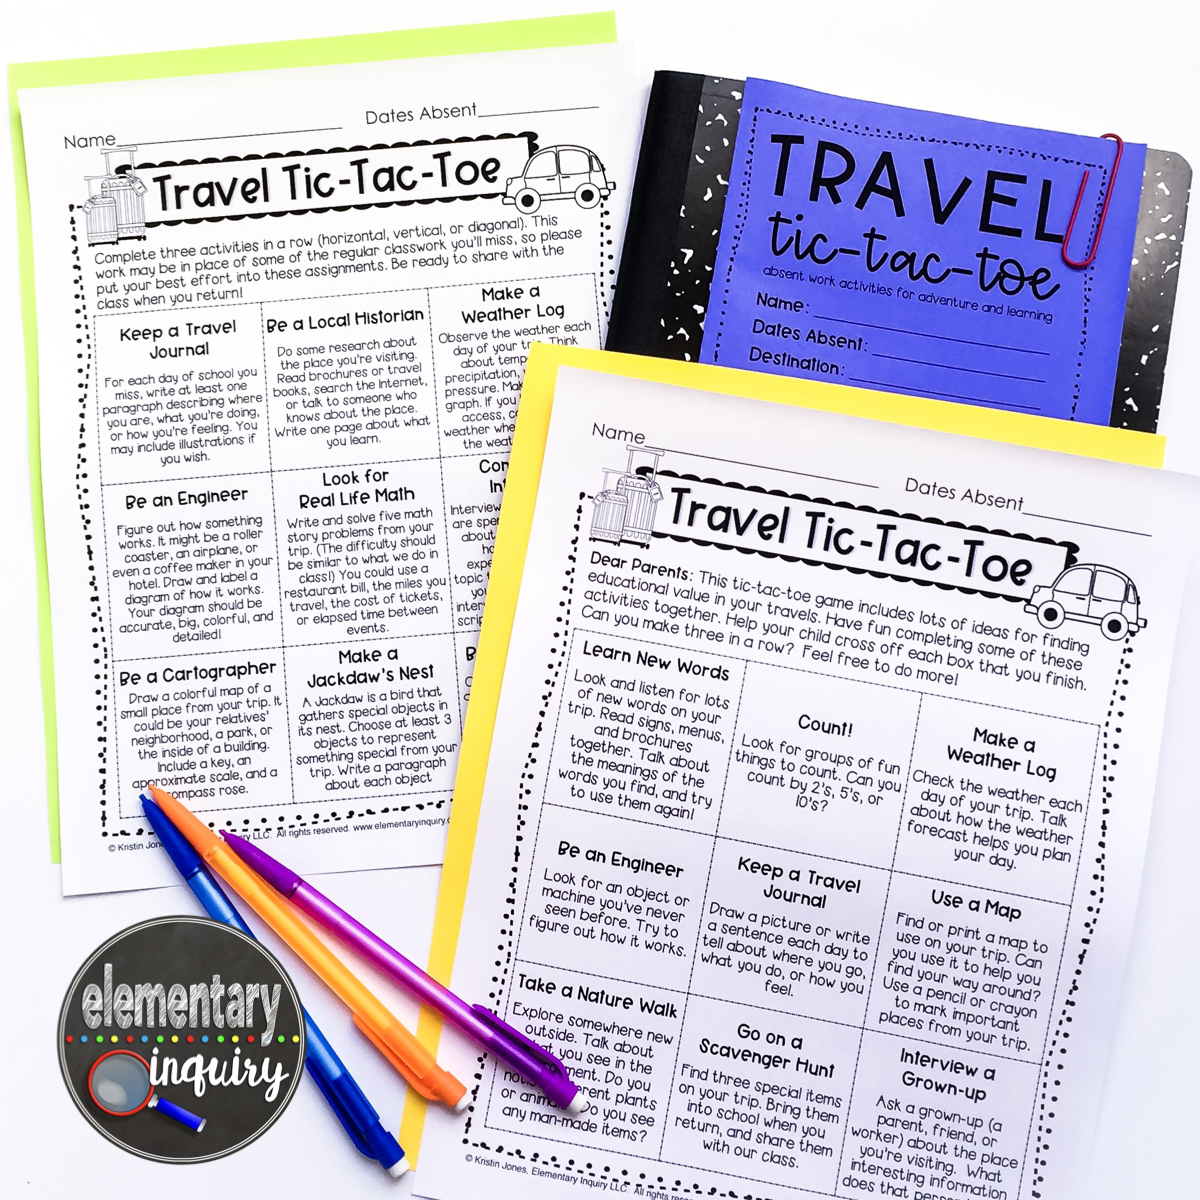 Two free travel tic-tac-toe gameboards and journal cover for no prep makeup work